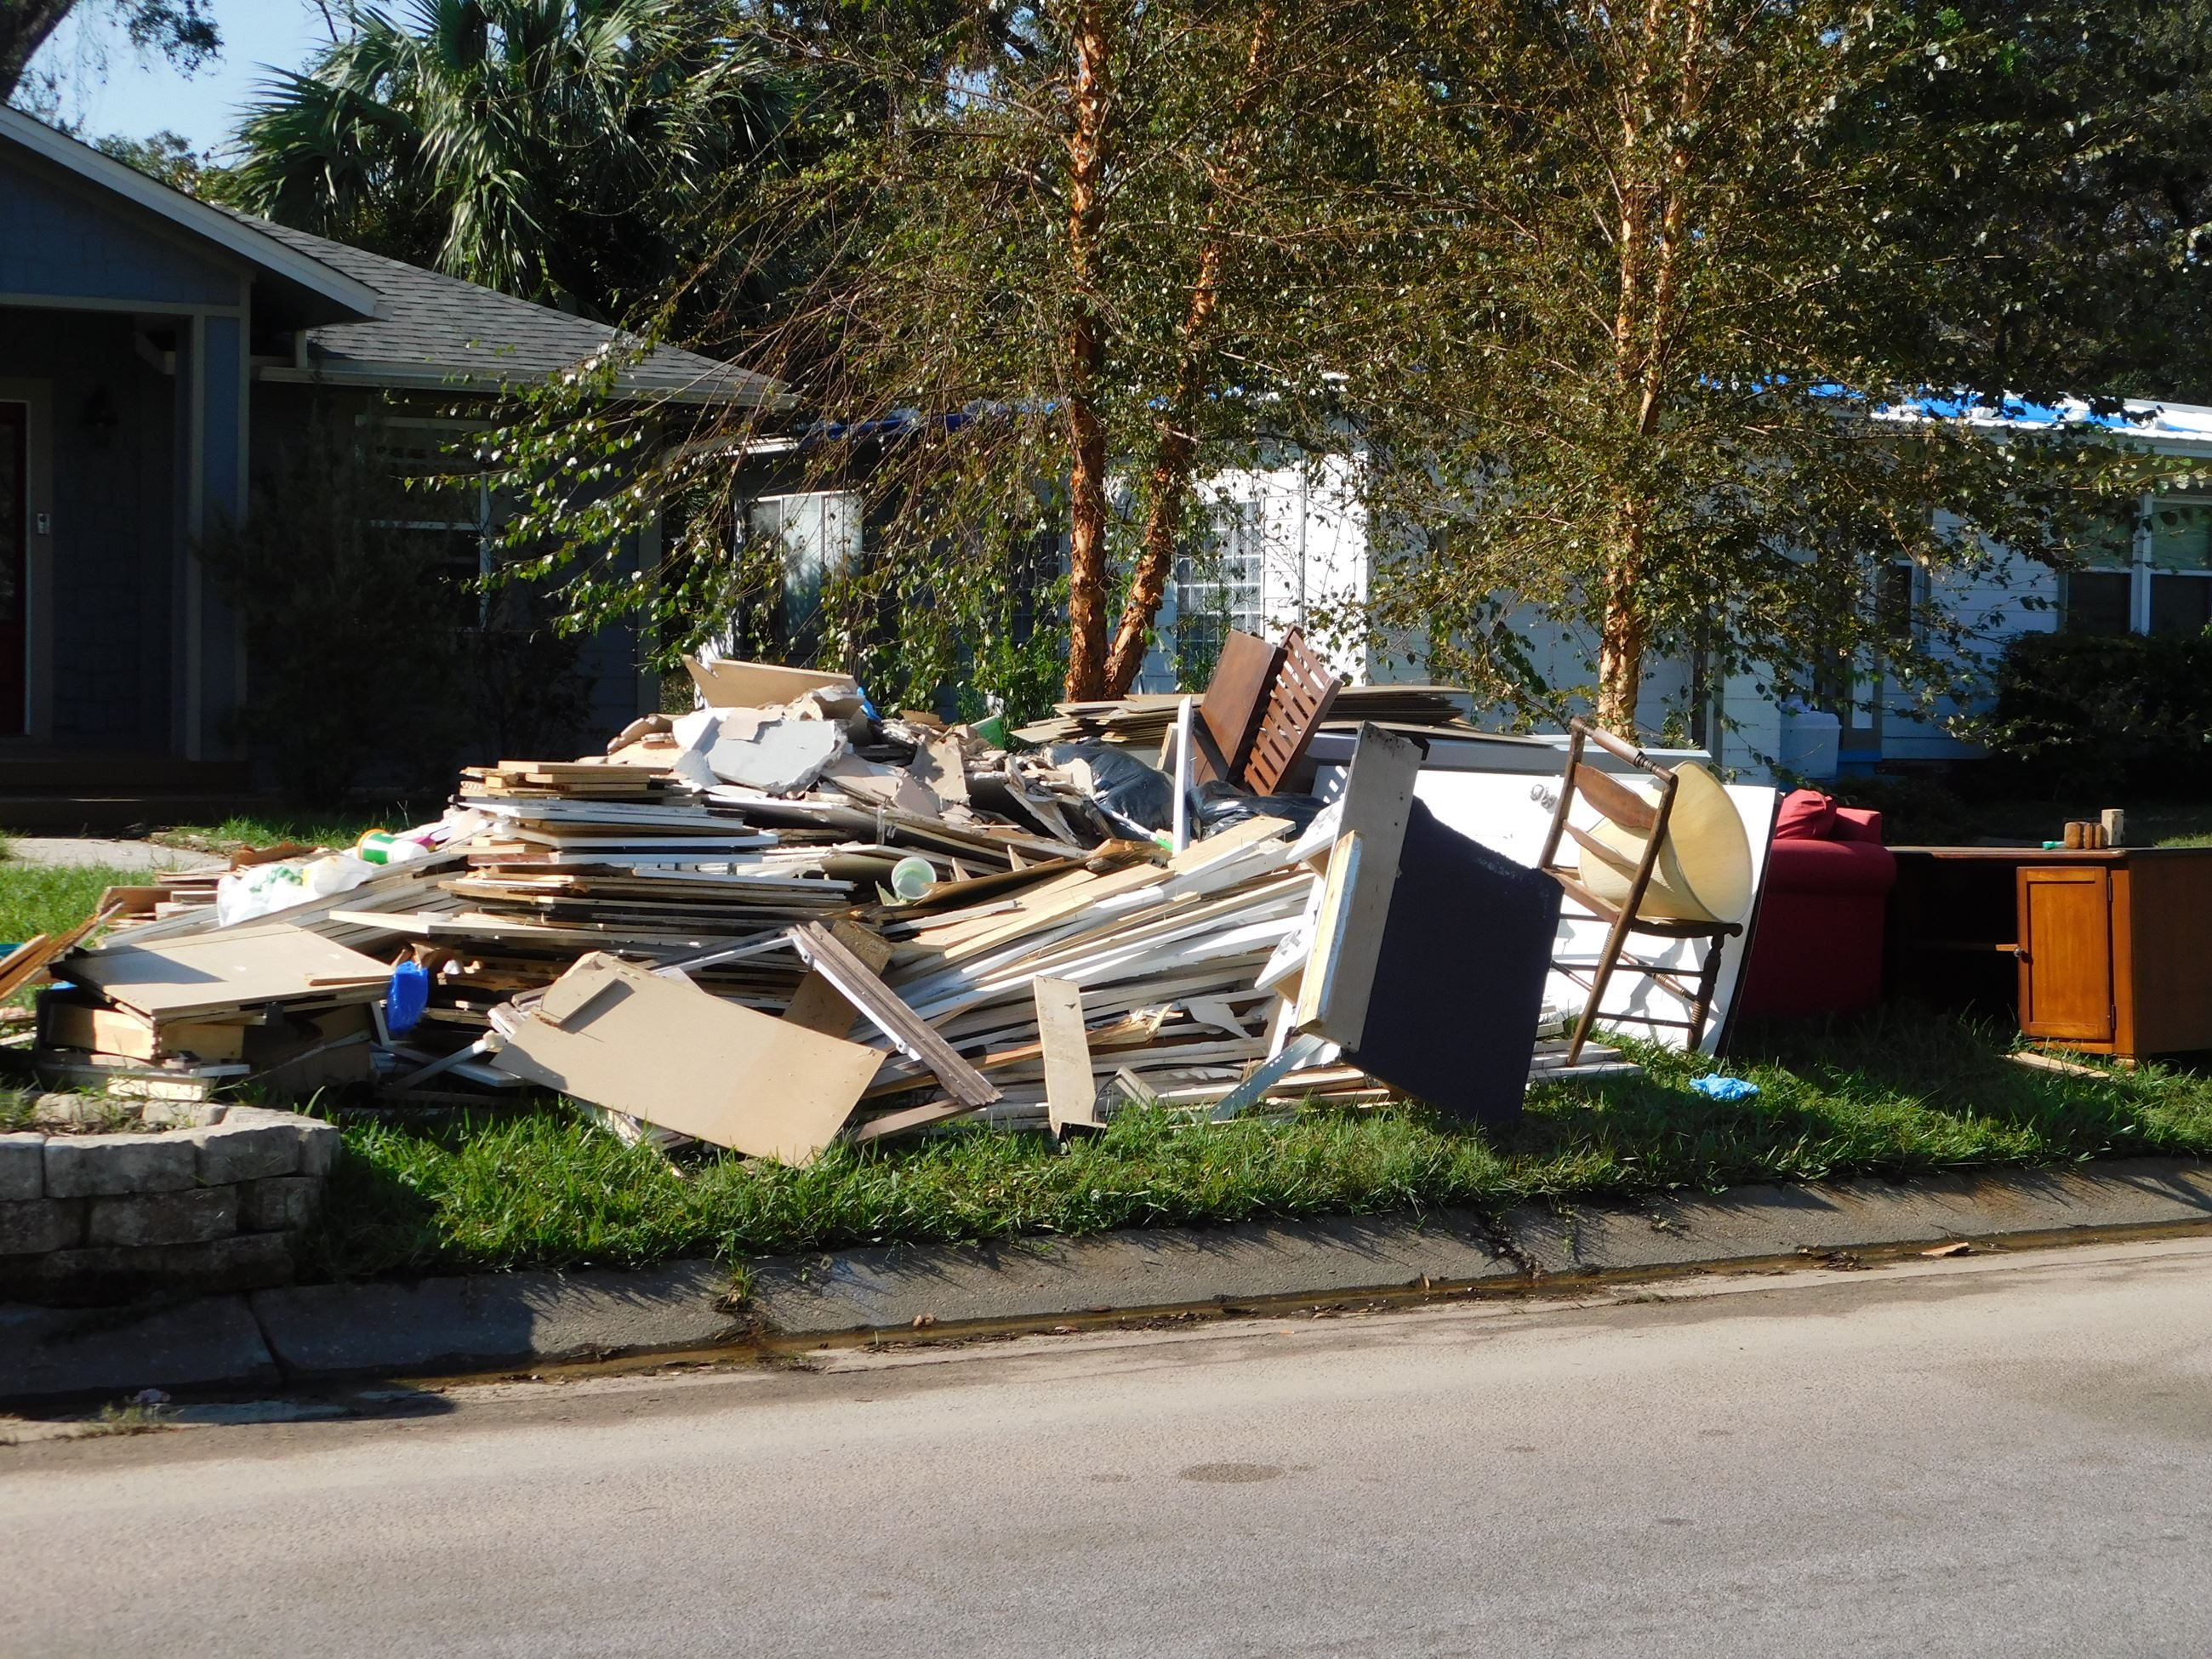 Hurricane Sally debris at the curb for pickup